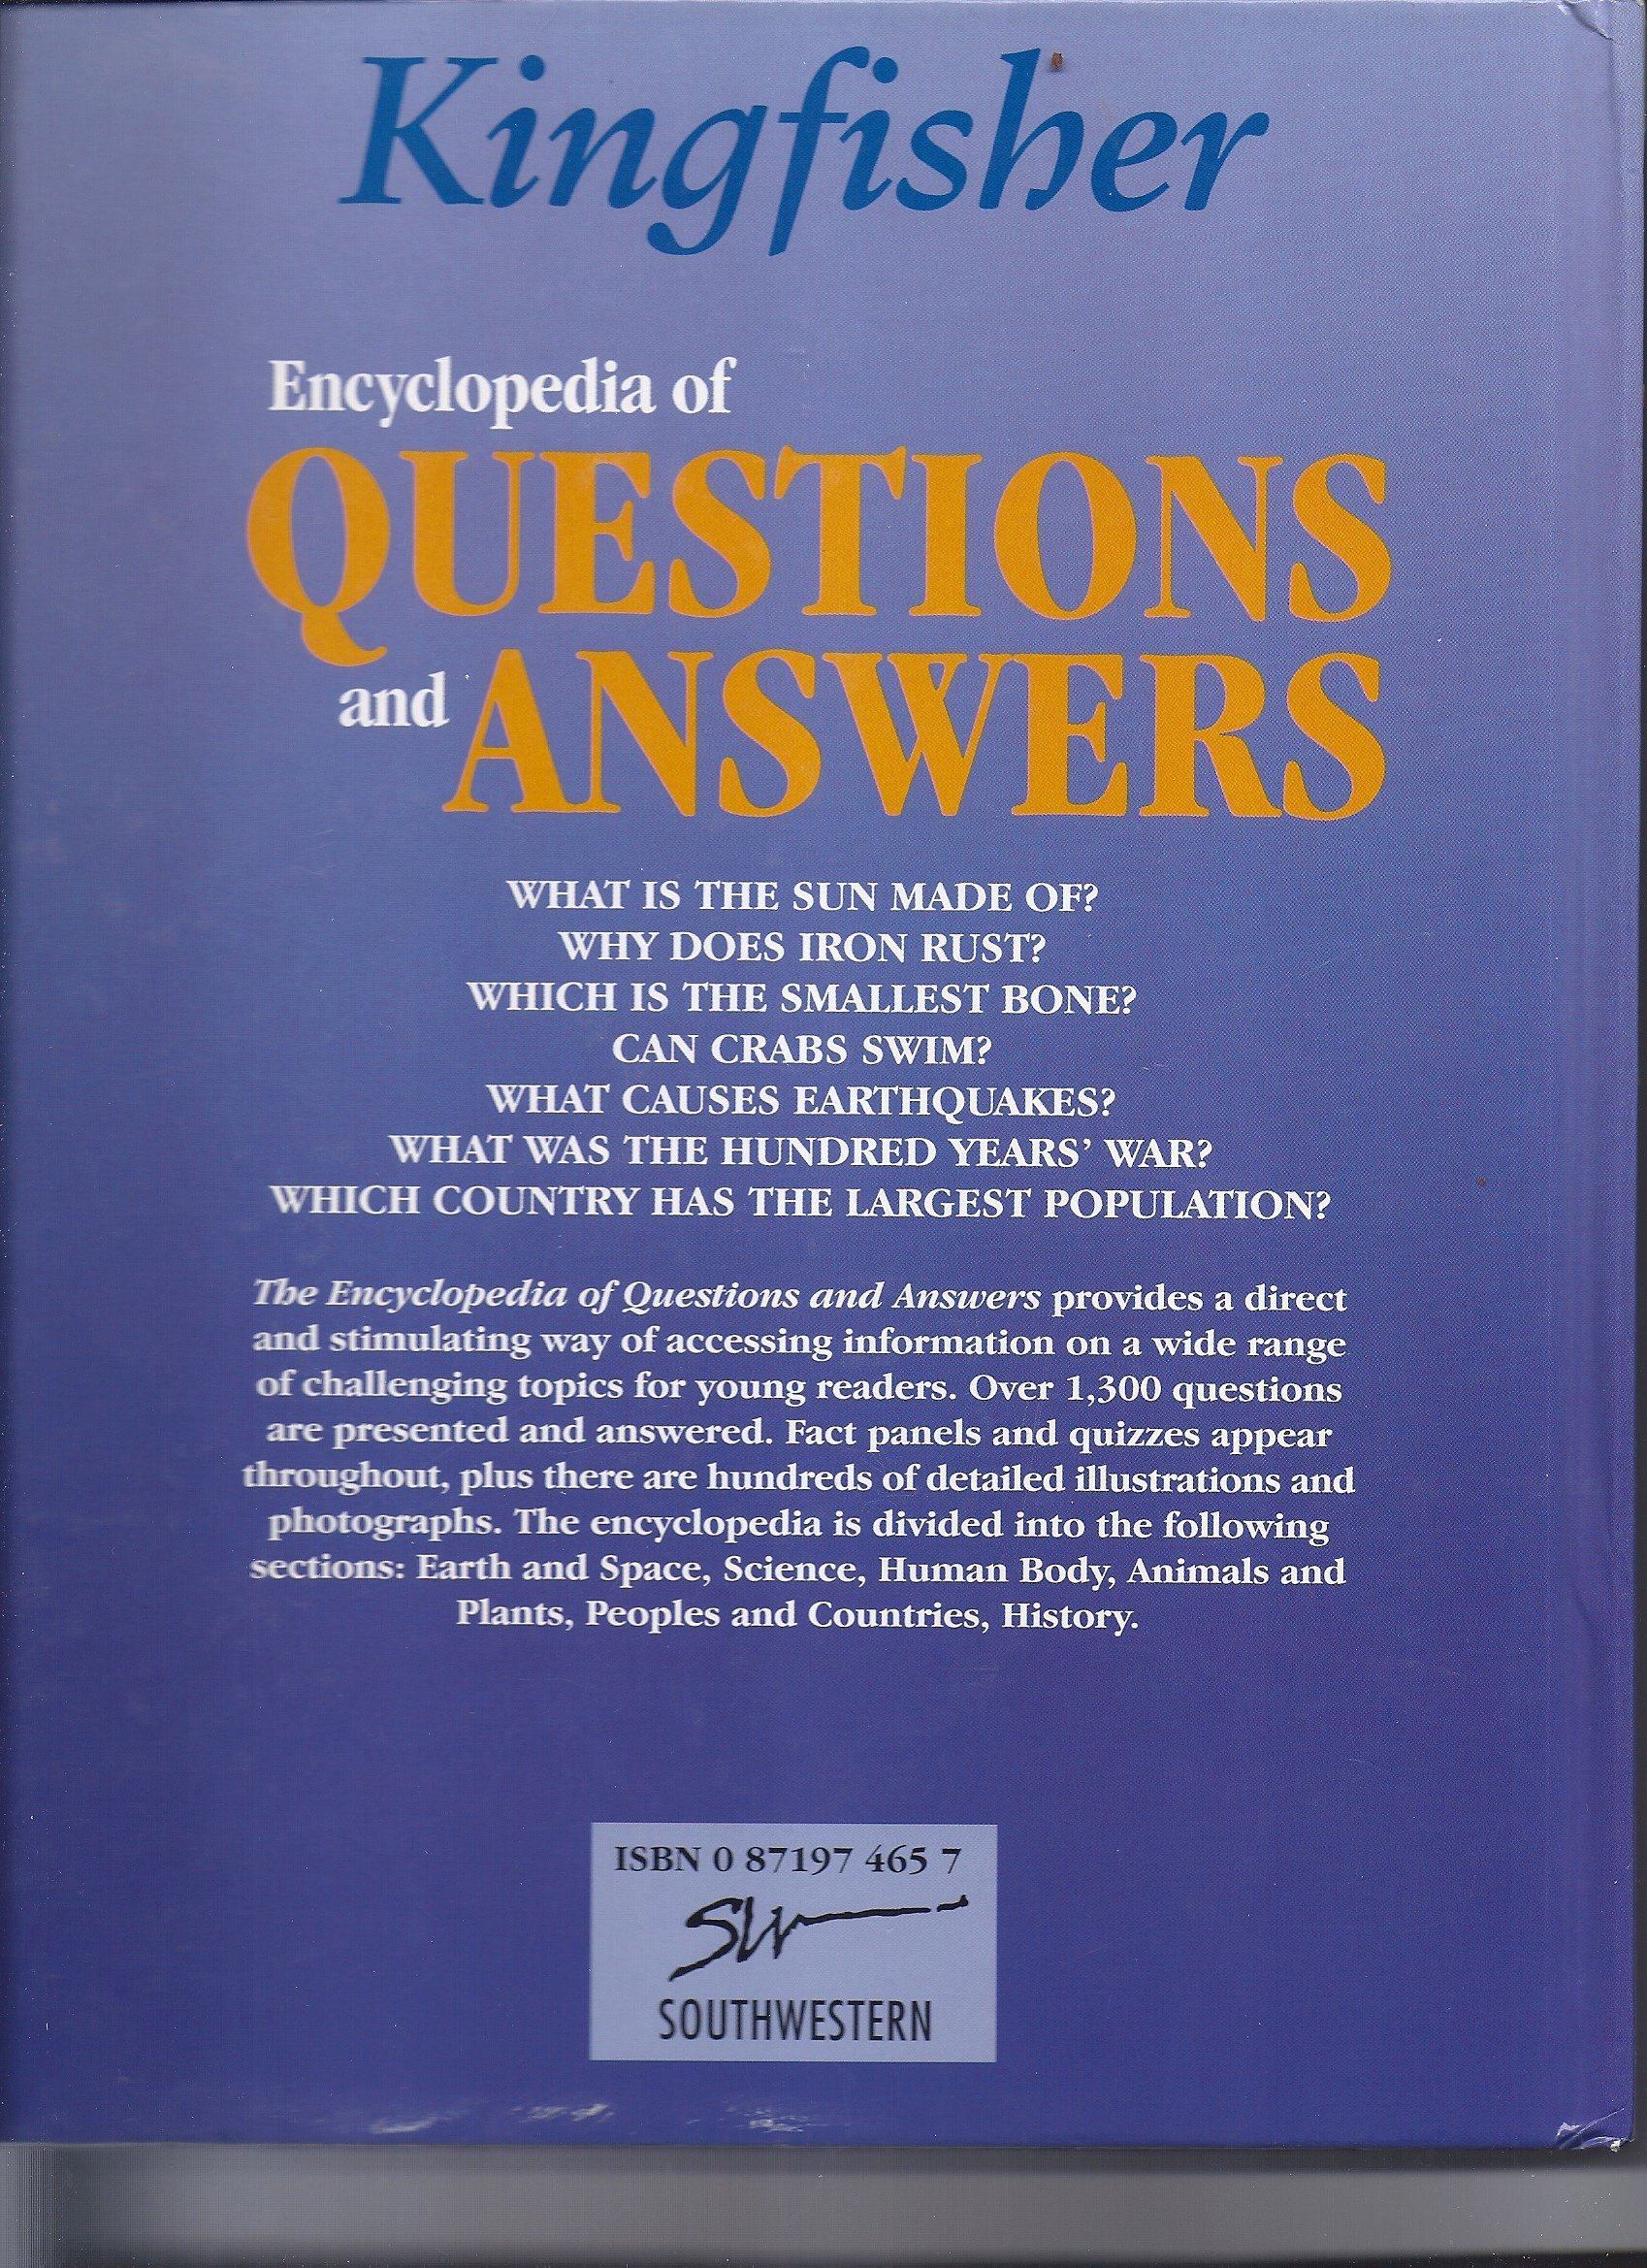 Kingfisher Encyclopedia of Questions and Answers (3 Volume